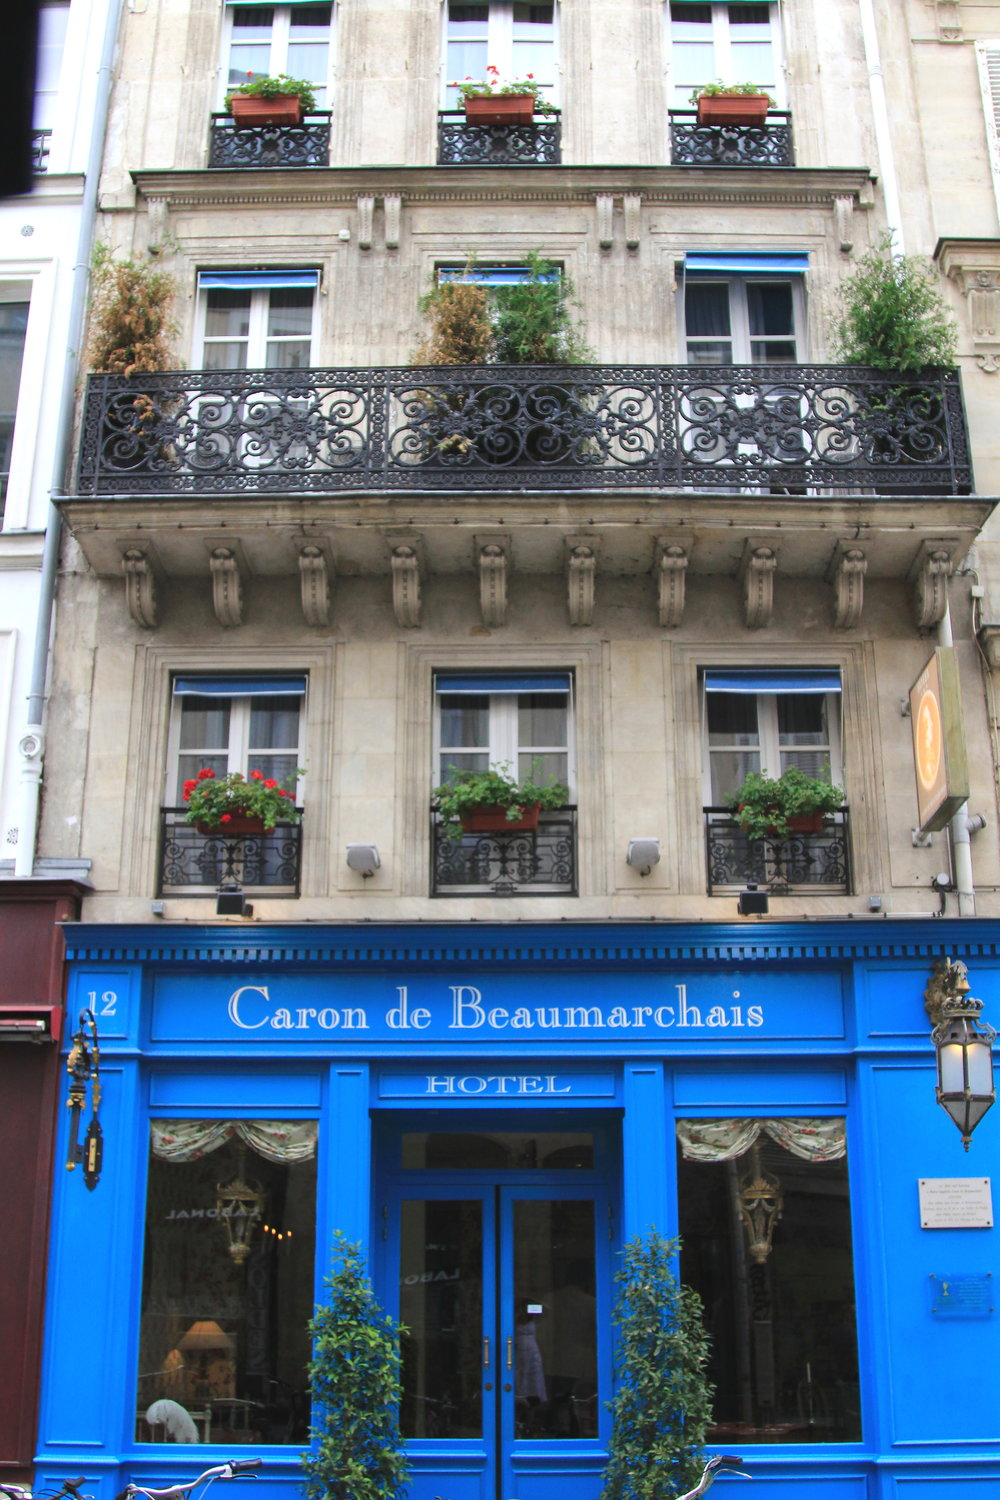 Hotel Caron de Beaumarchais - delightful hotel in the 4th arrondissement